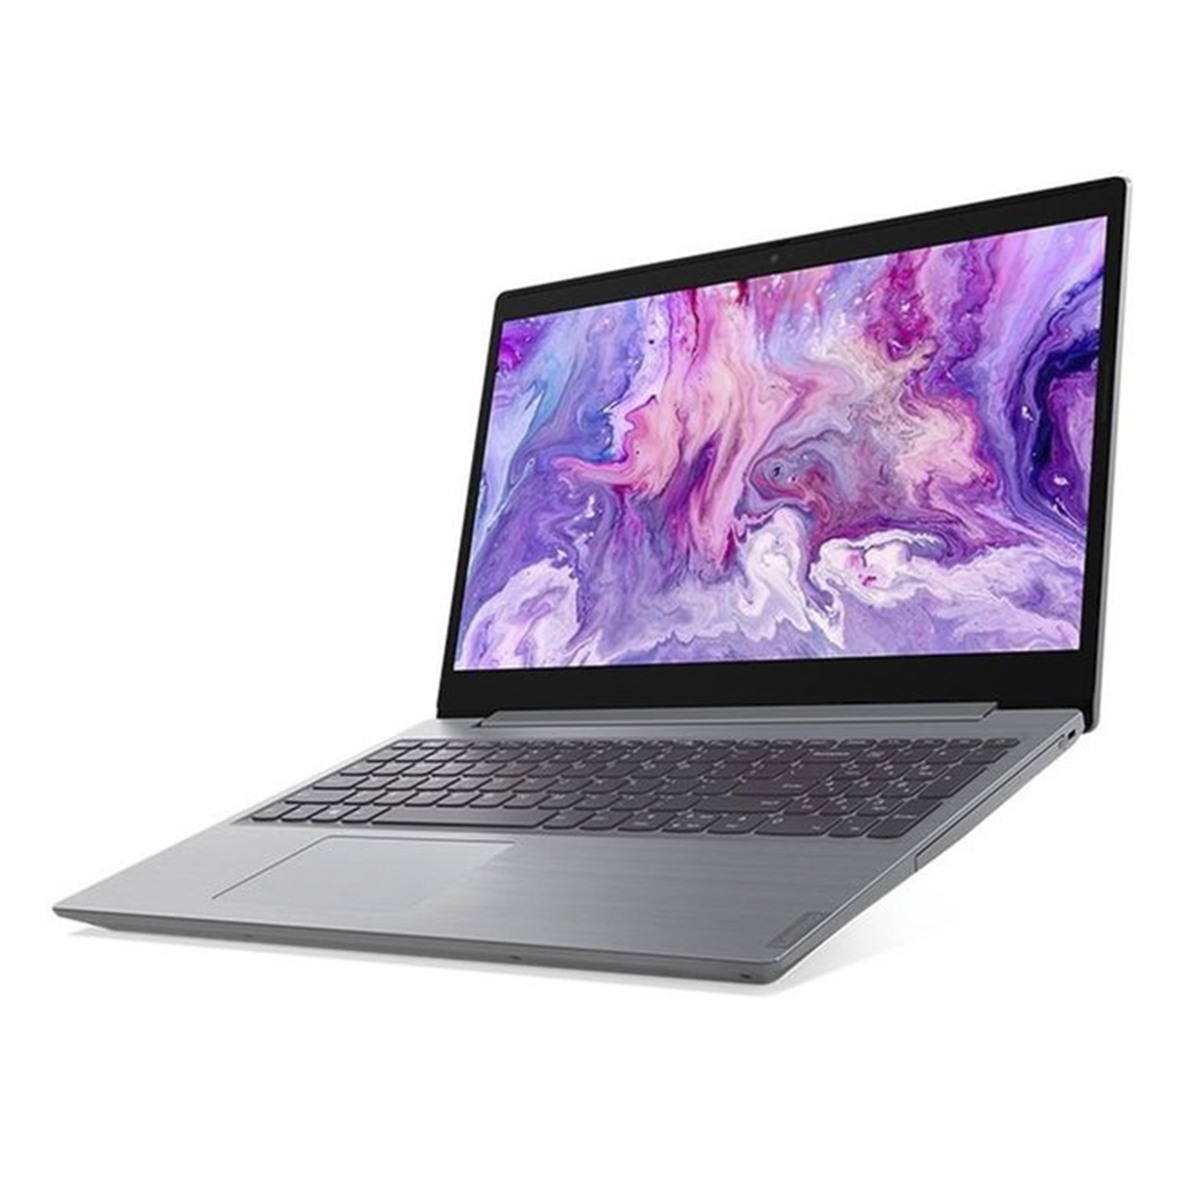 Lenovo Ideapad L3 15IML05 81Y300L2AX Laptop-Core i5-10210U, 4GB RAM, 1TB HDD, 2GB Windows 10 Home 15.6inch,Grey